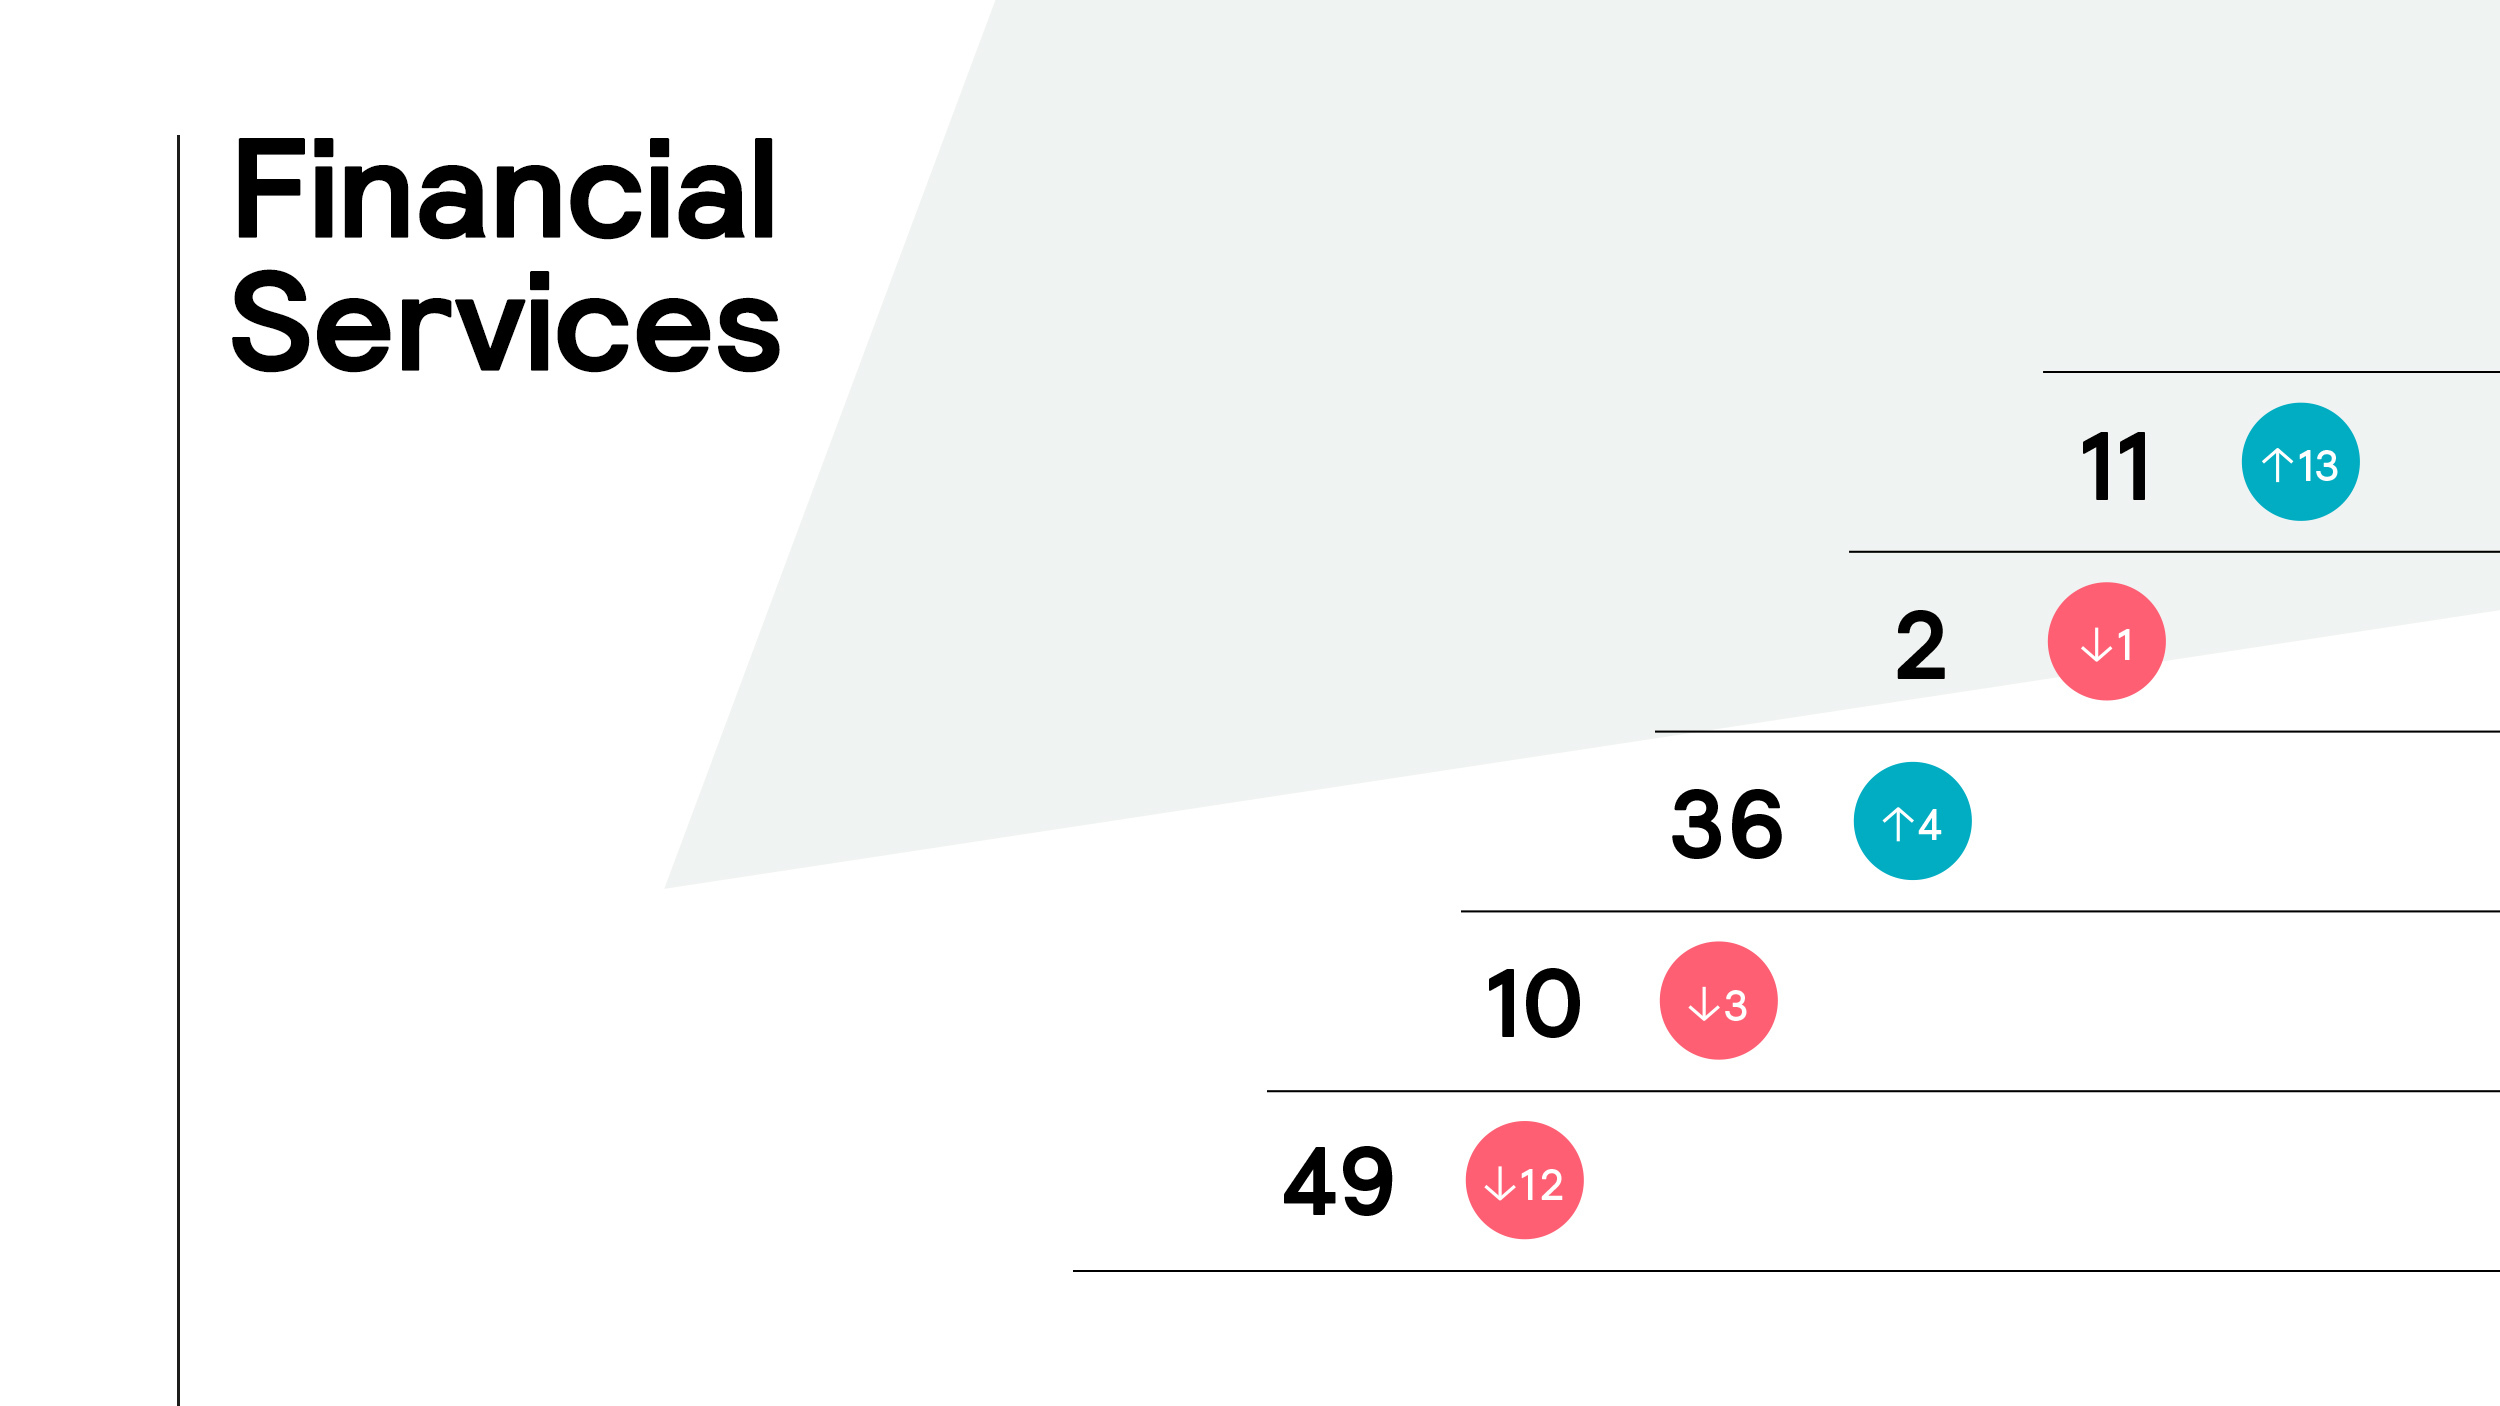 Future Brand Index 2021 Financial Services